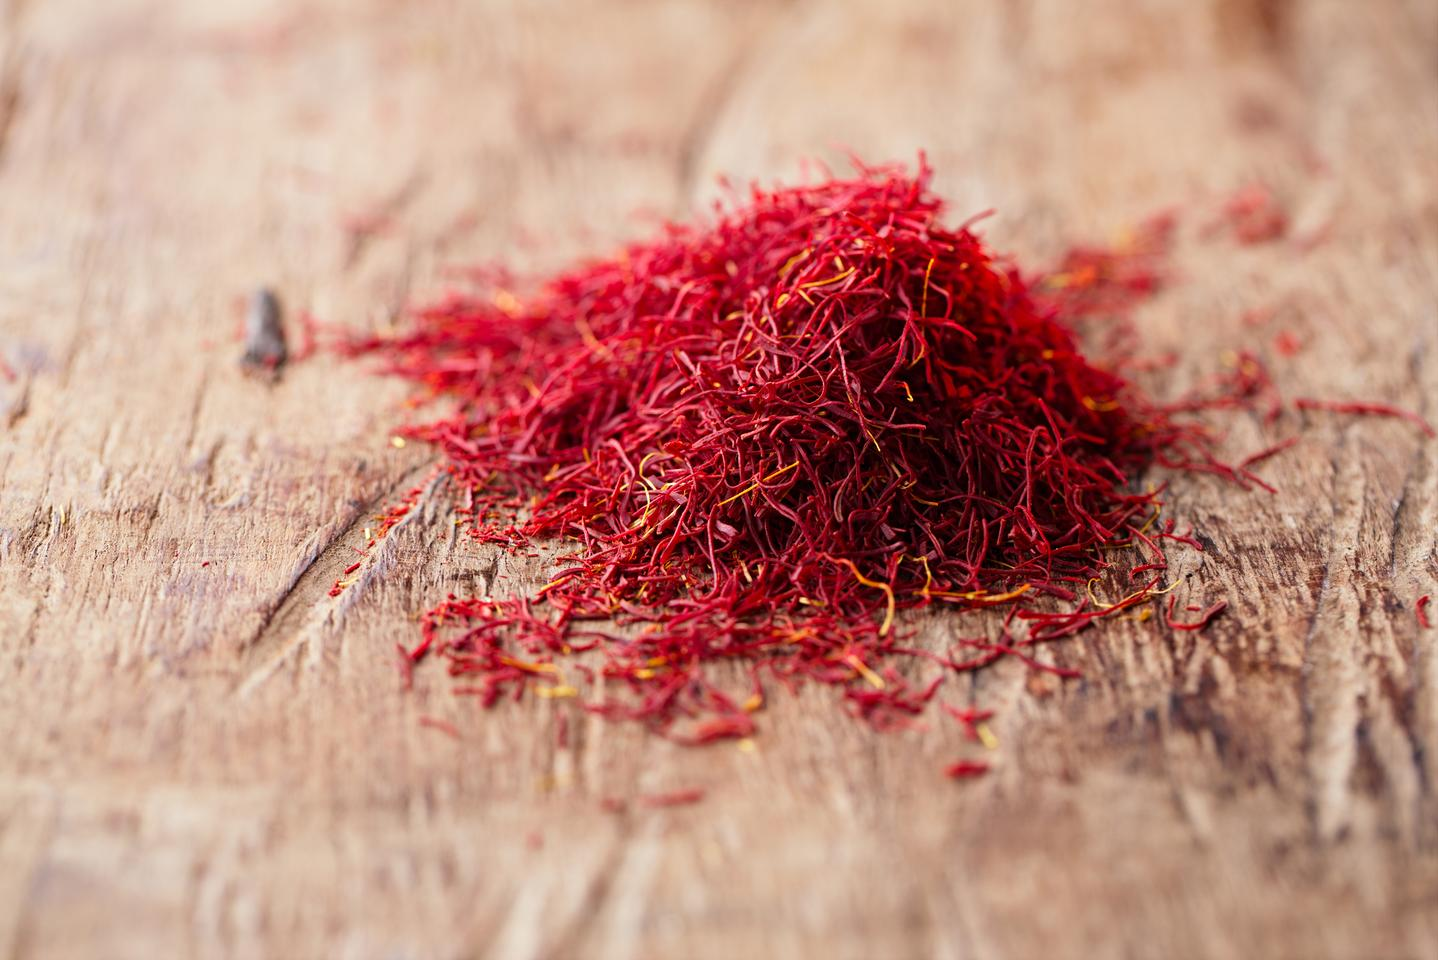 In a recent study, saffron was found to outperform a placebo as a treatment for insomnia